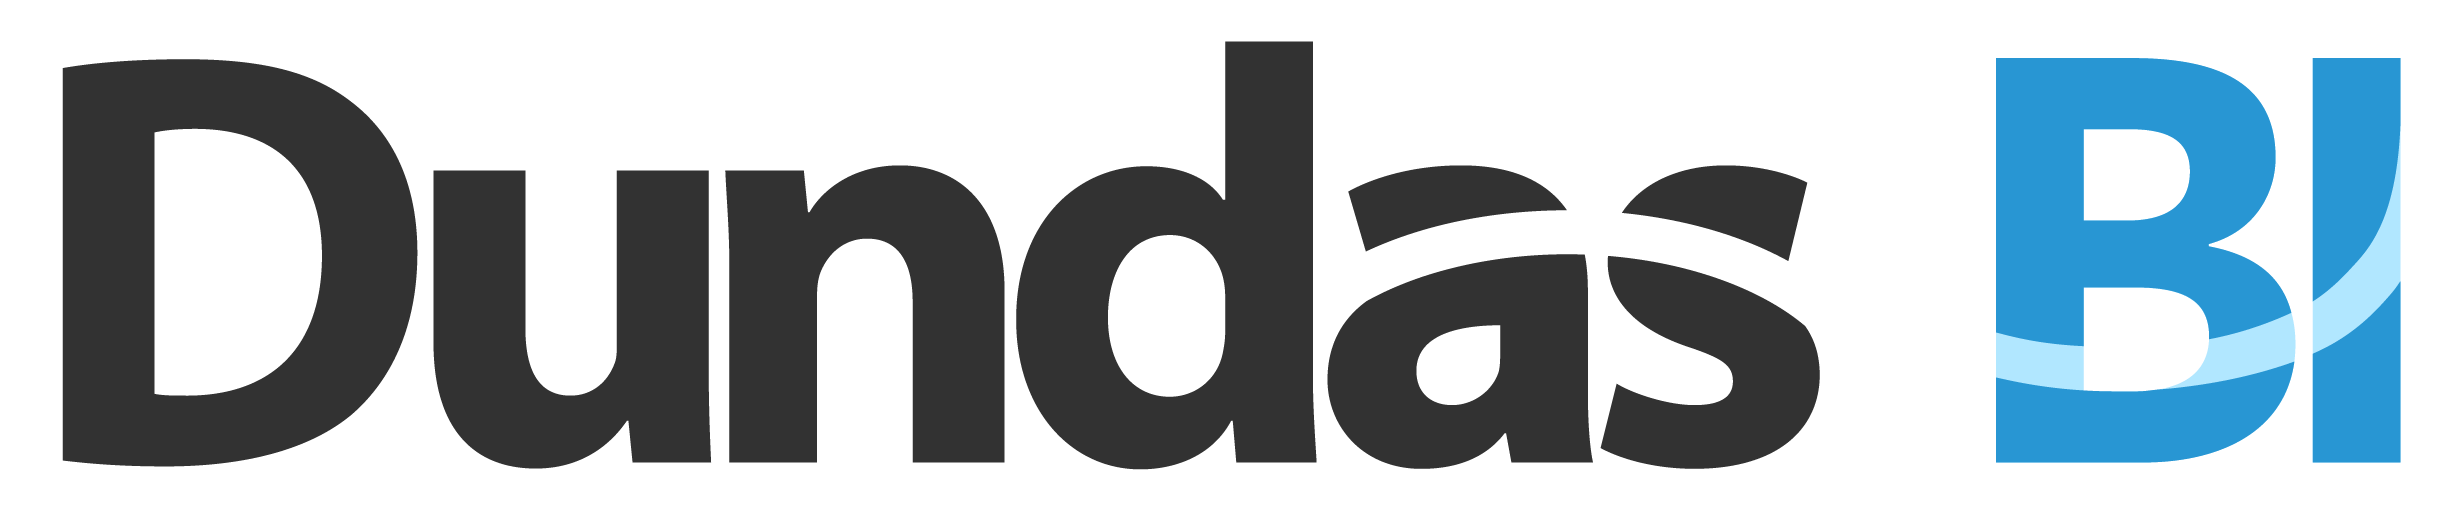 Dundas Data Visualization Logo